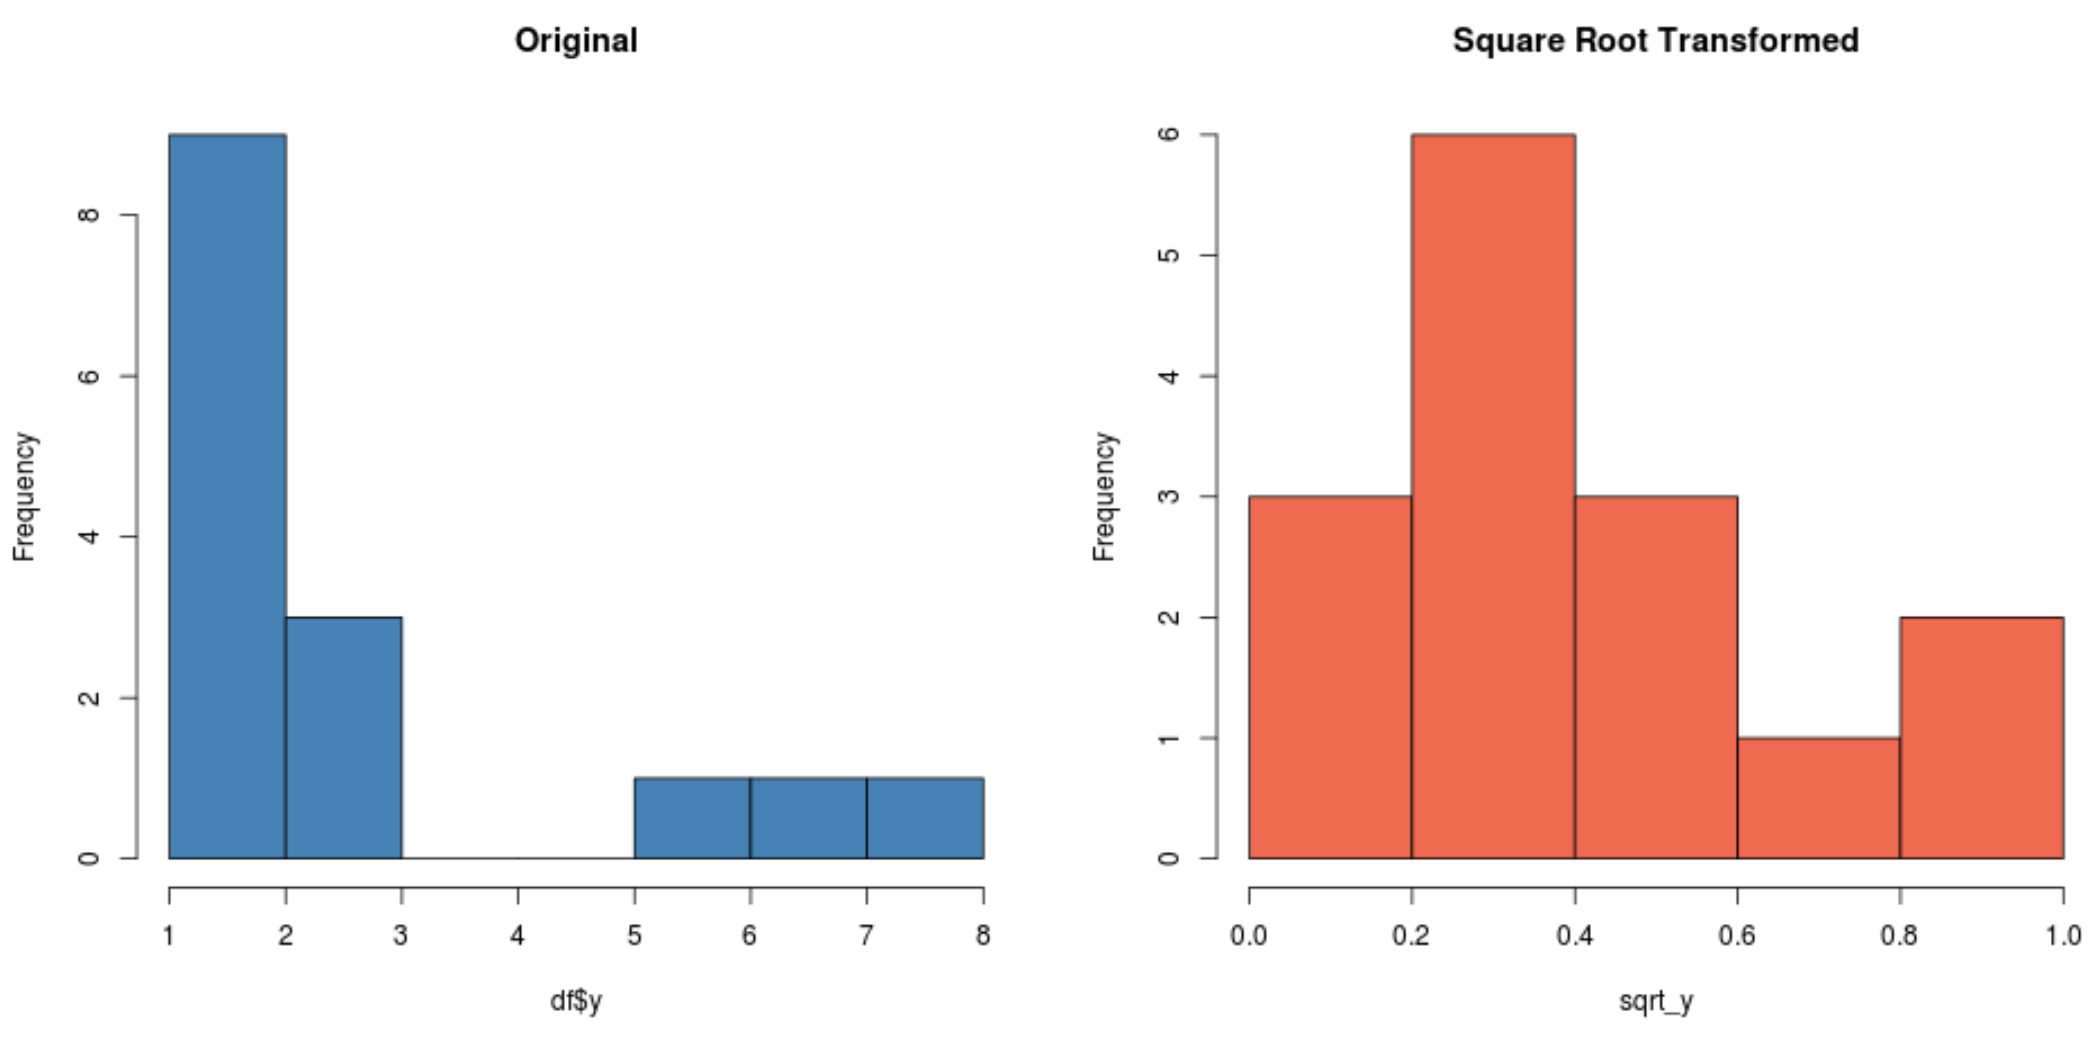 Square root transformation in R